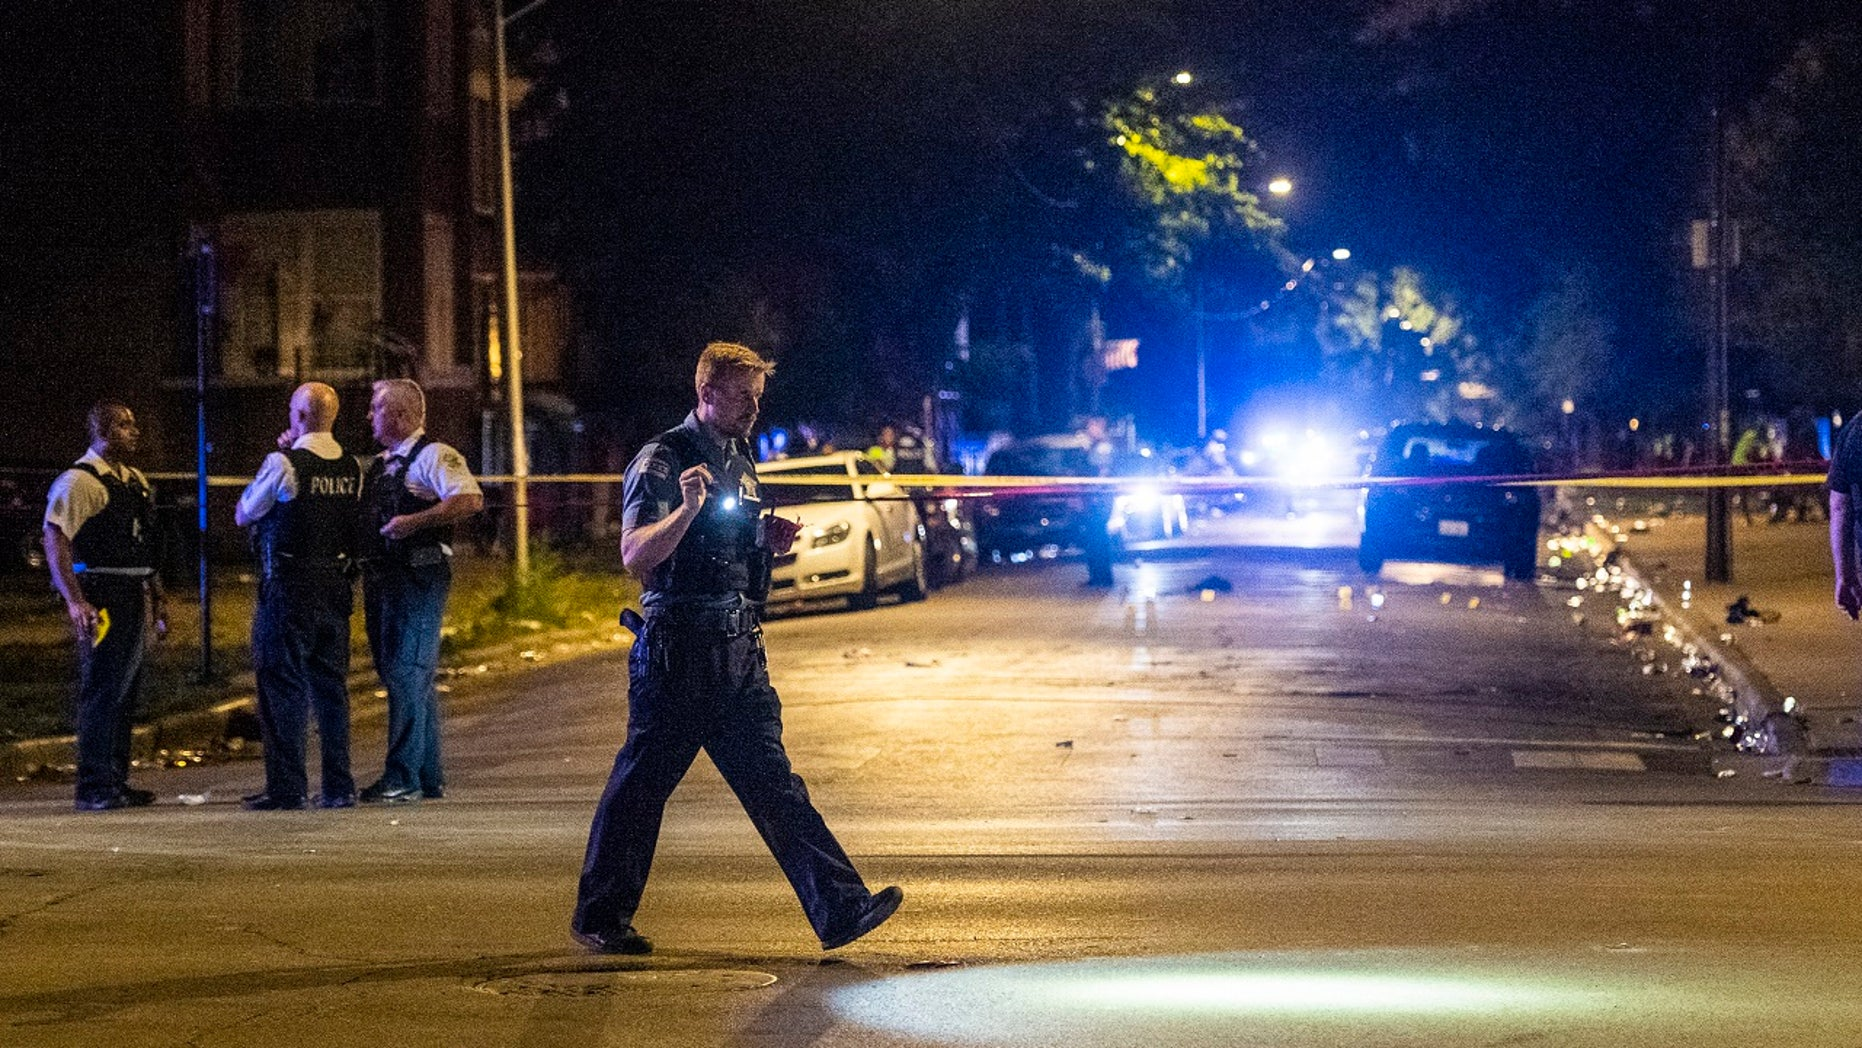 police investigate the scene where multiple people were shot in Chicago over the weekend.